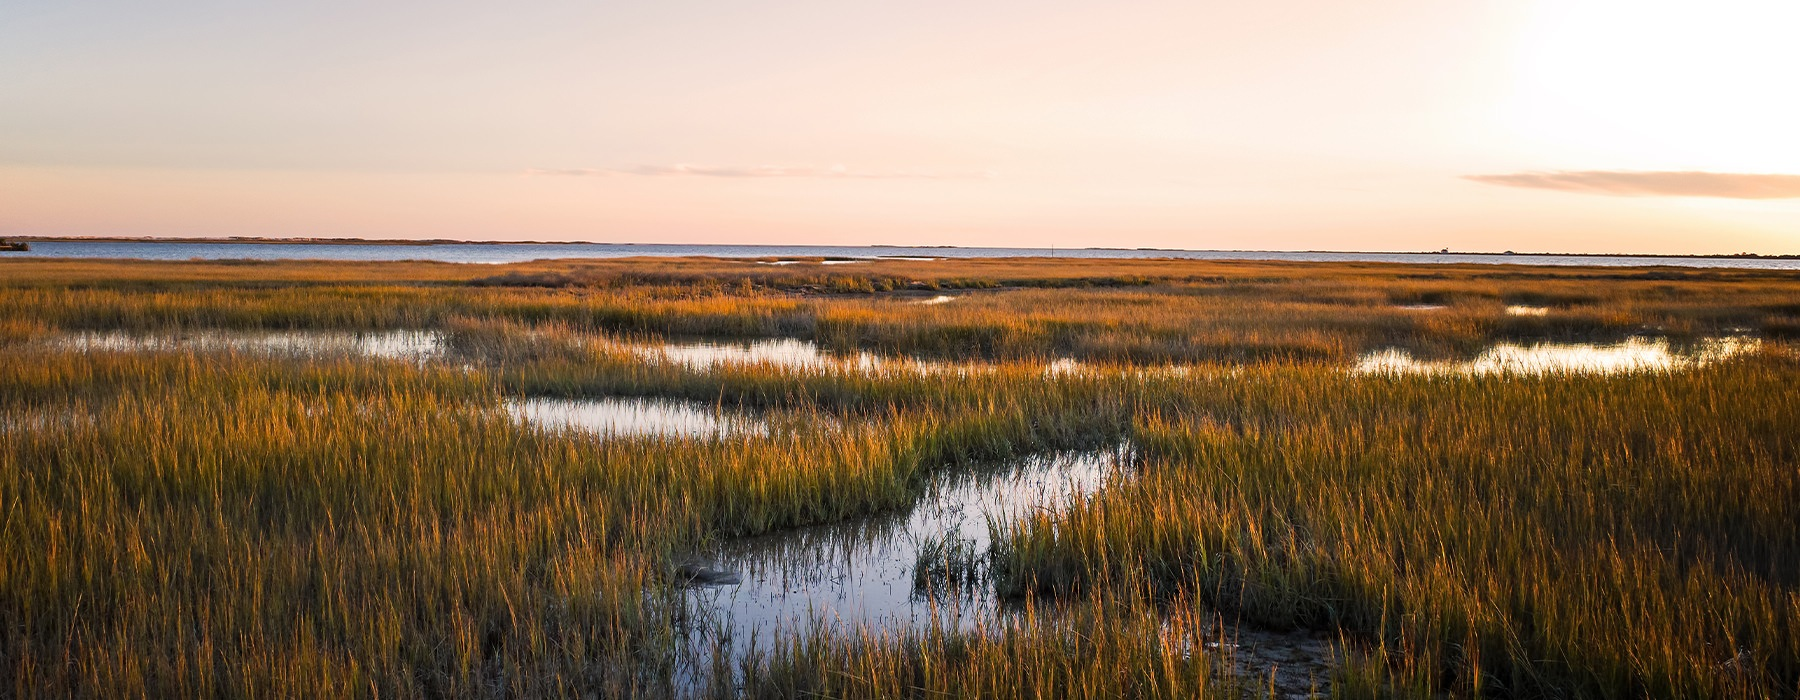 Wide open marsh in the beautiful sunset